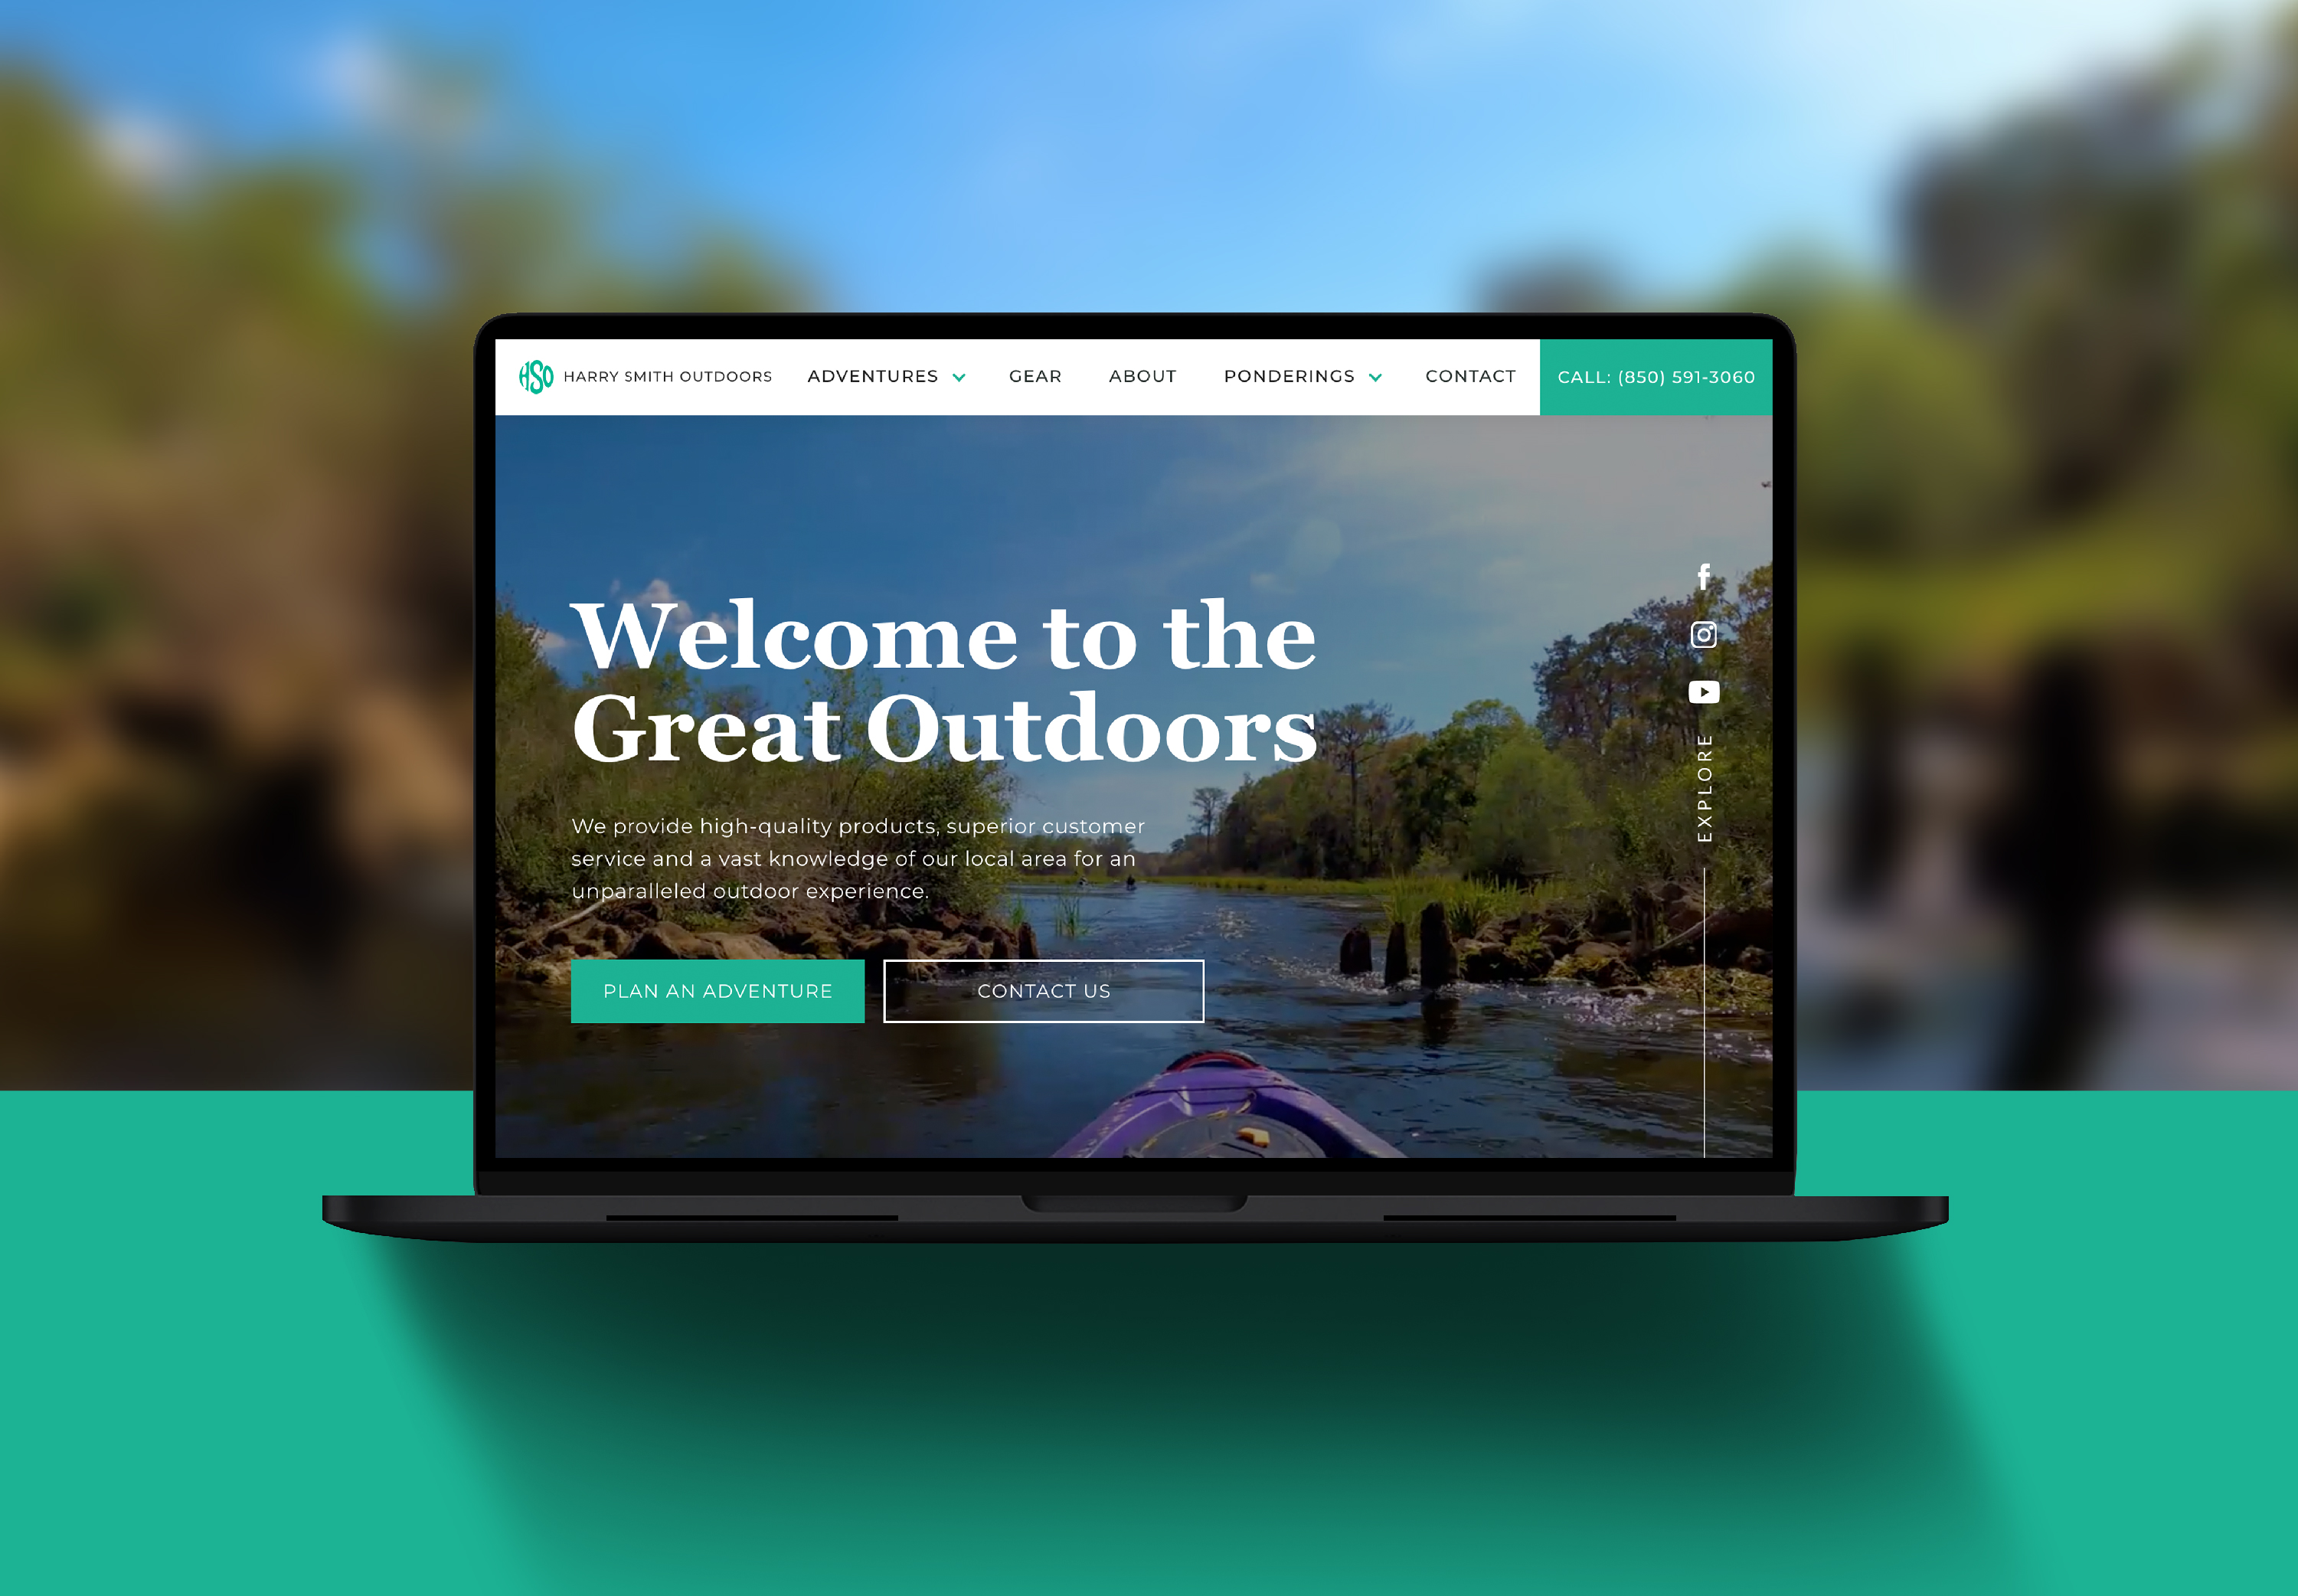 Homepage design for the Harry Smith Outdoors website